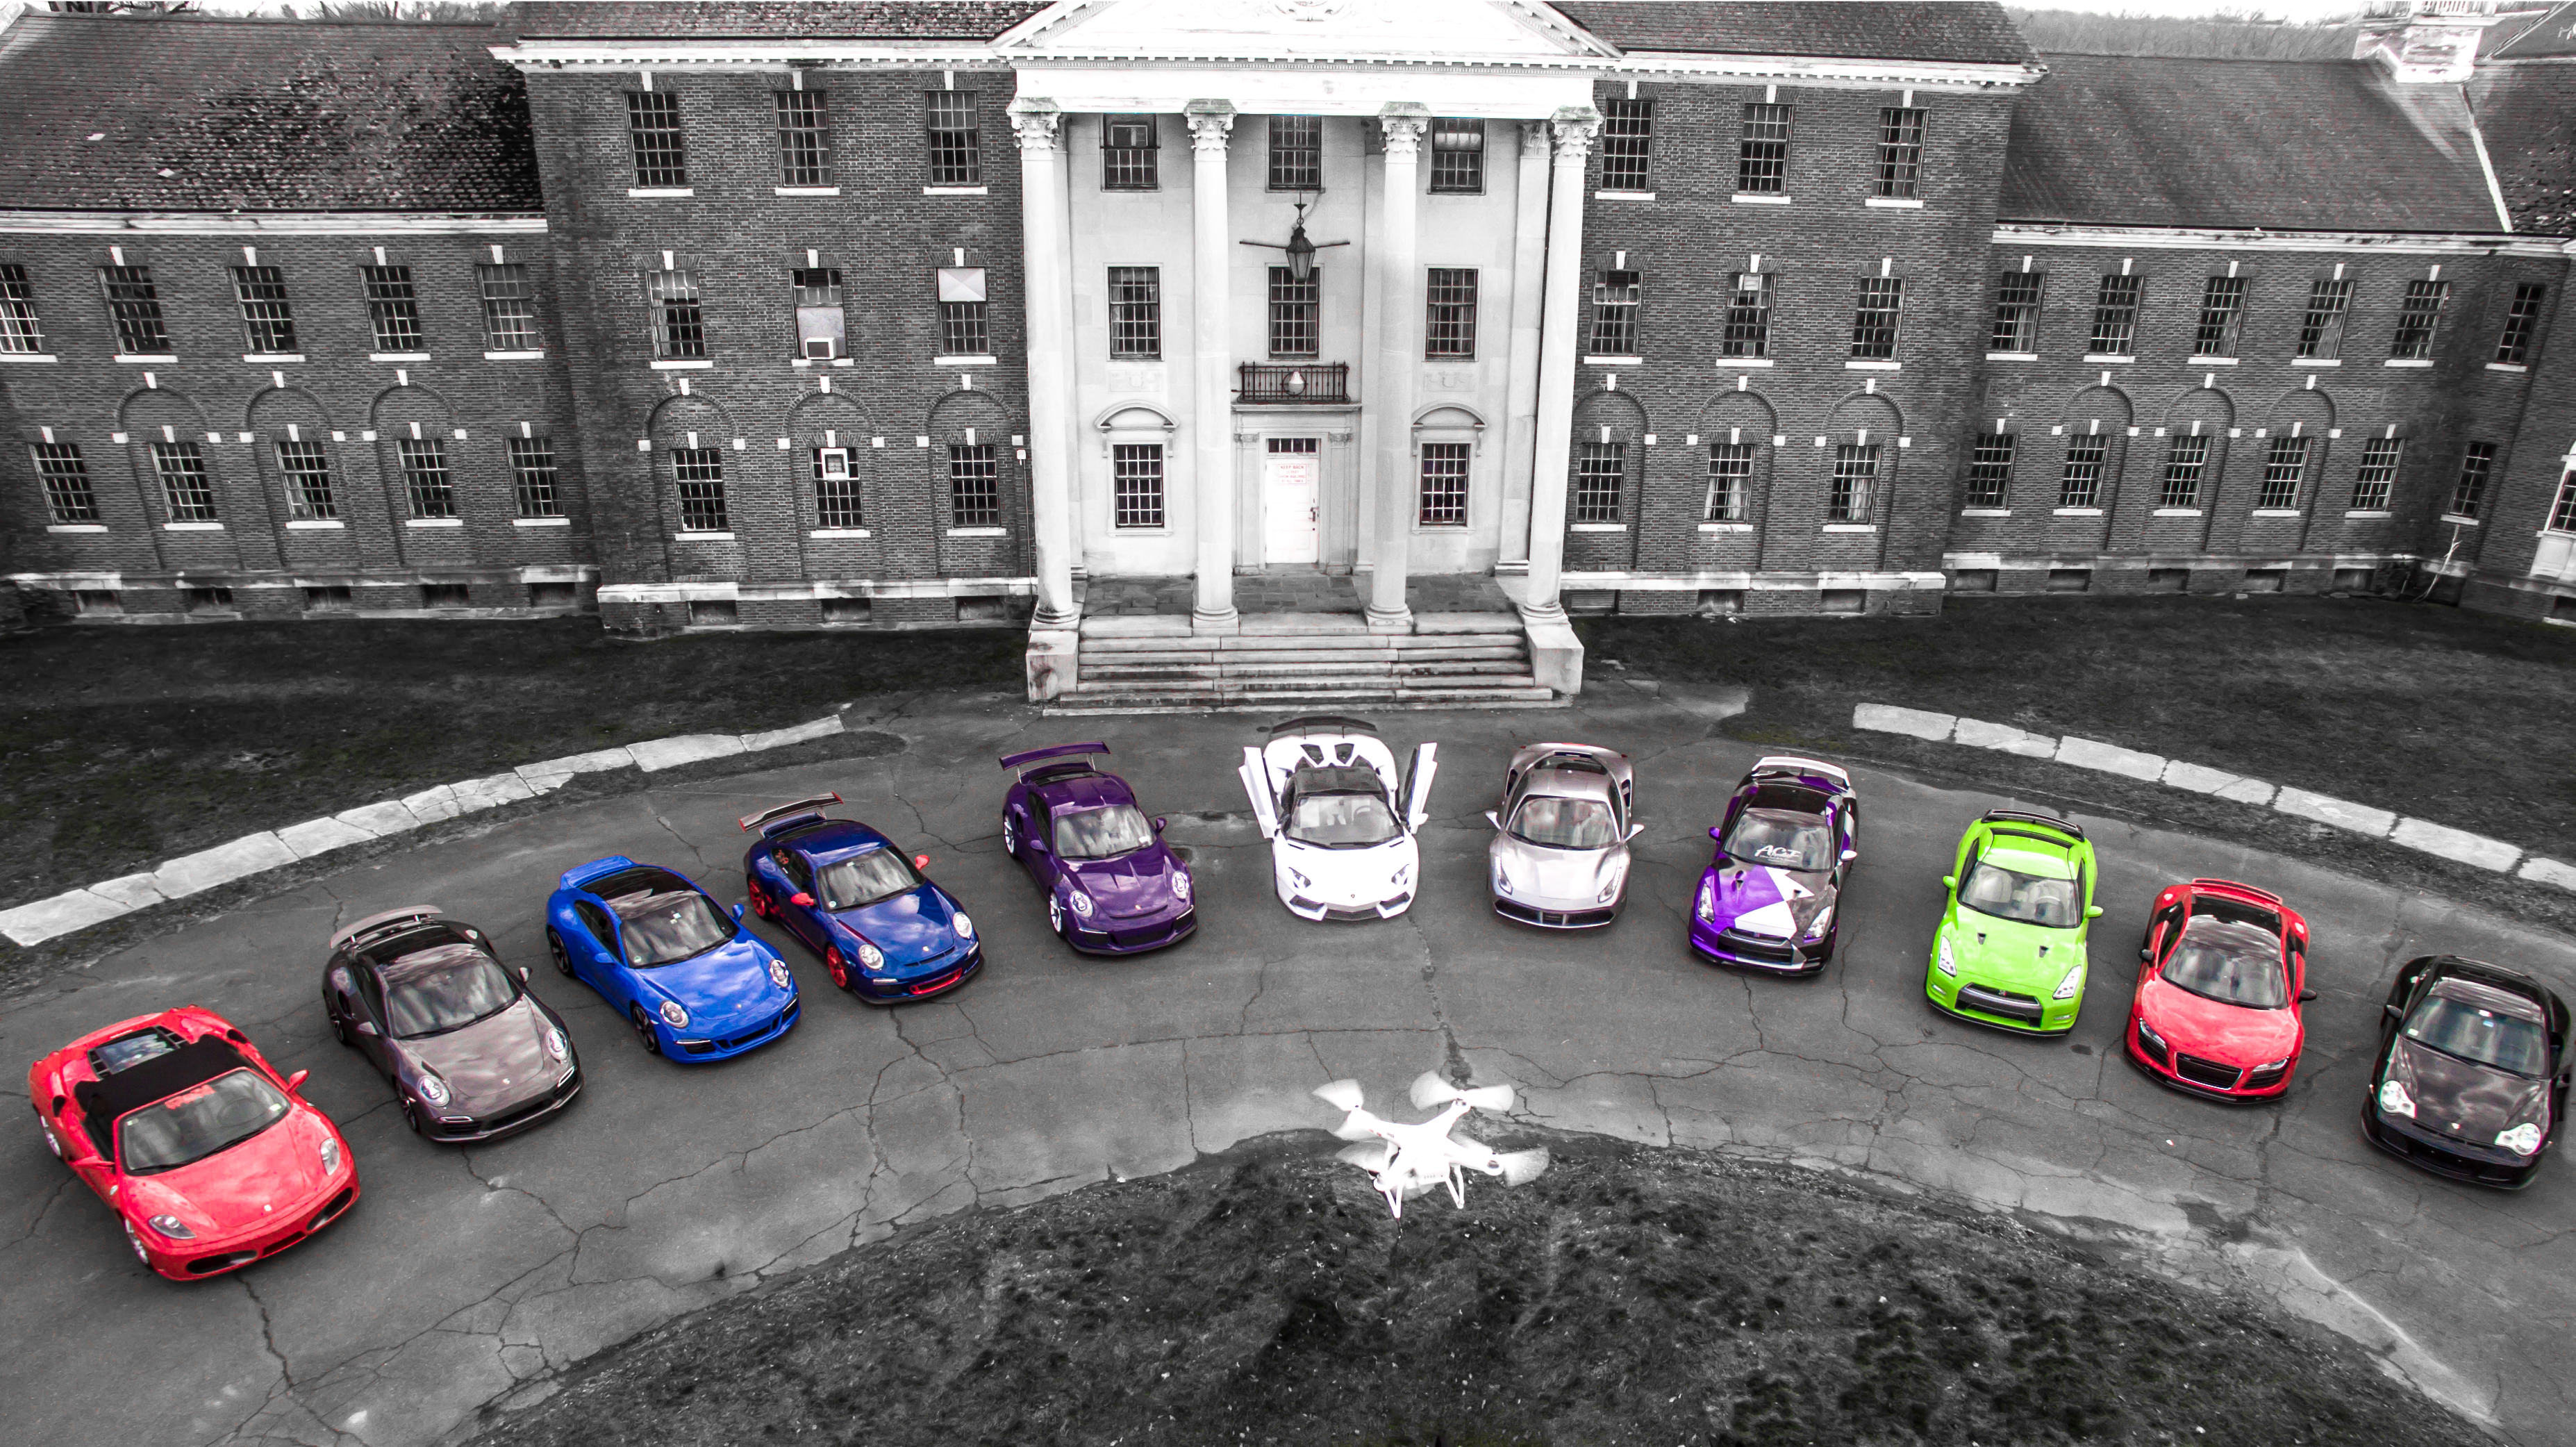 Drone Photography of Cars at Insane Asylum